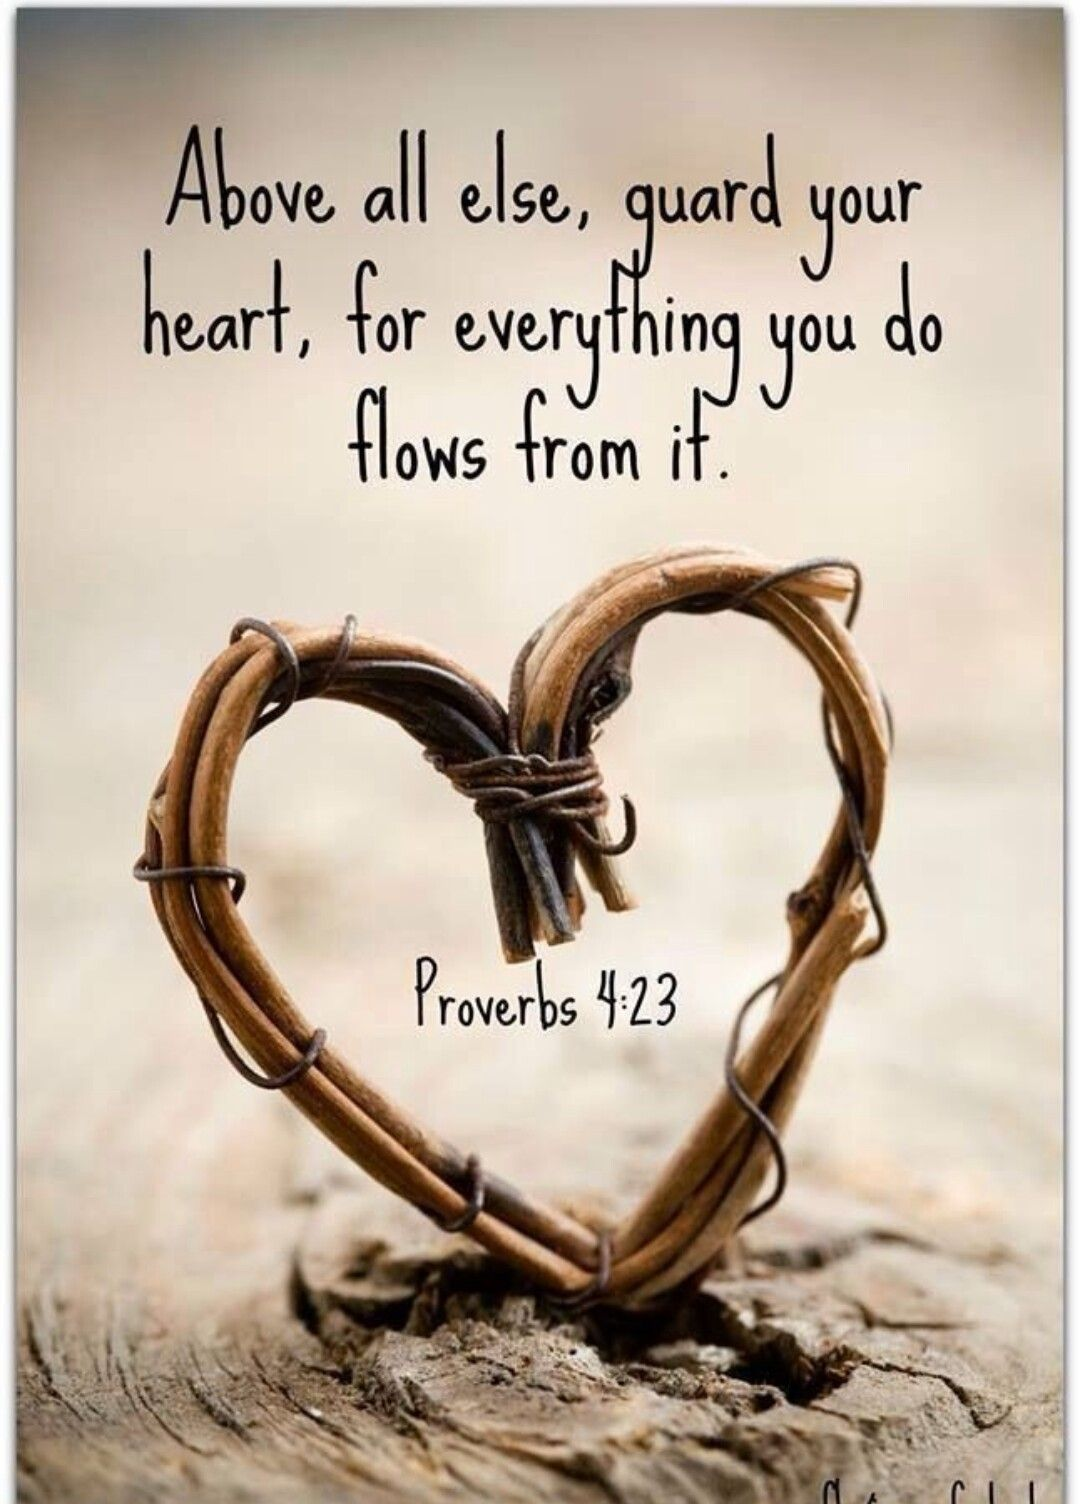 Bible Quotes About Relationships Pinmichelle Francica Ryan On Just Words Pinterest